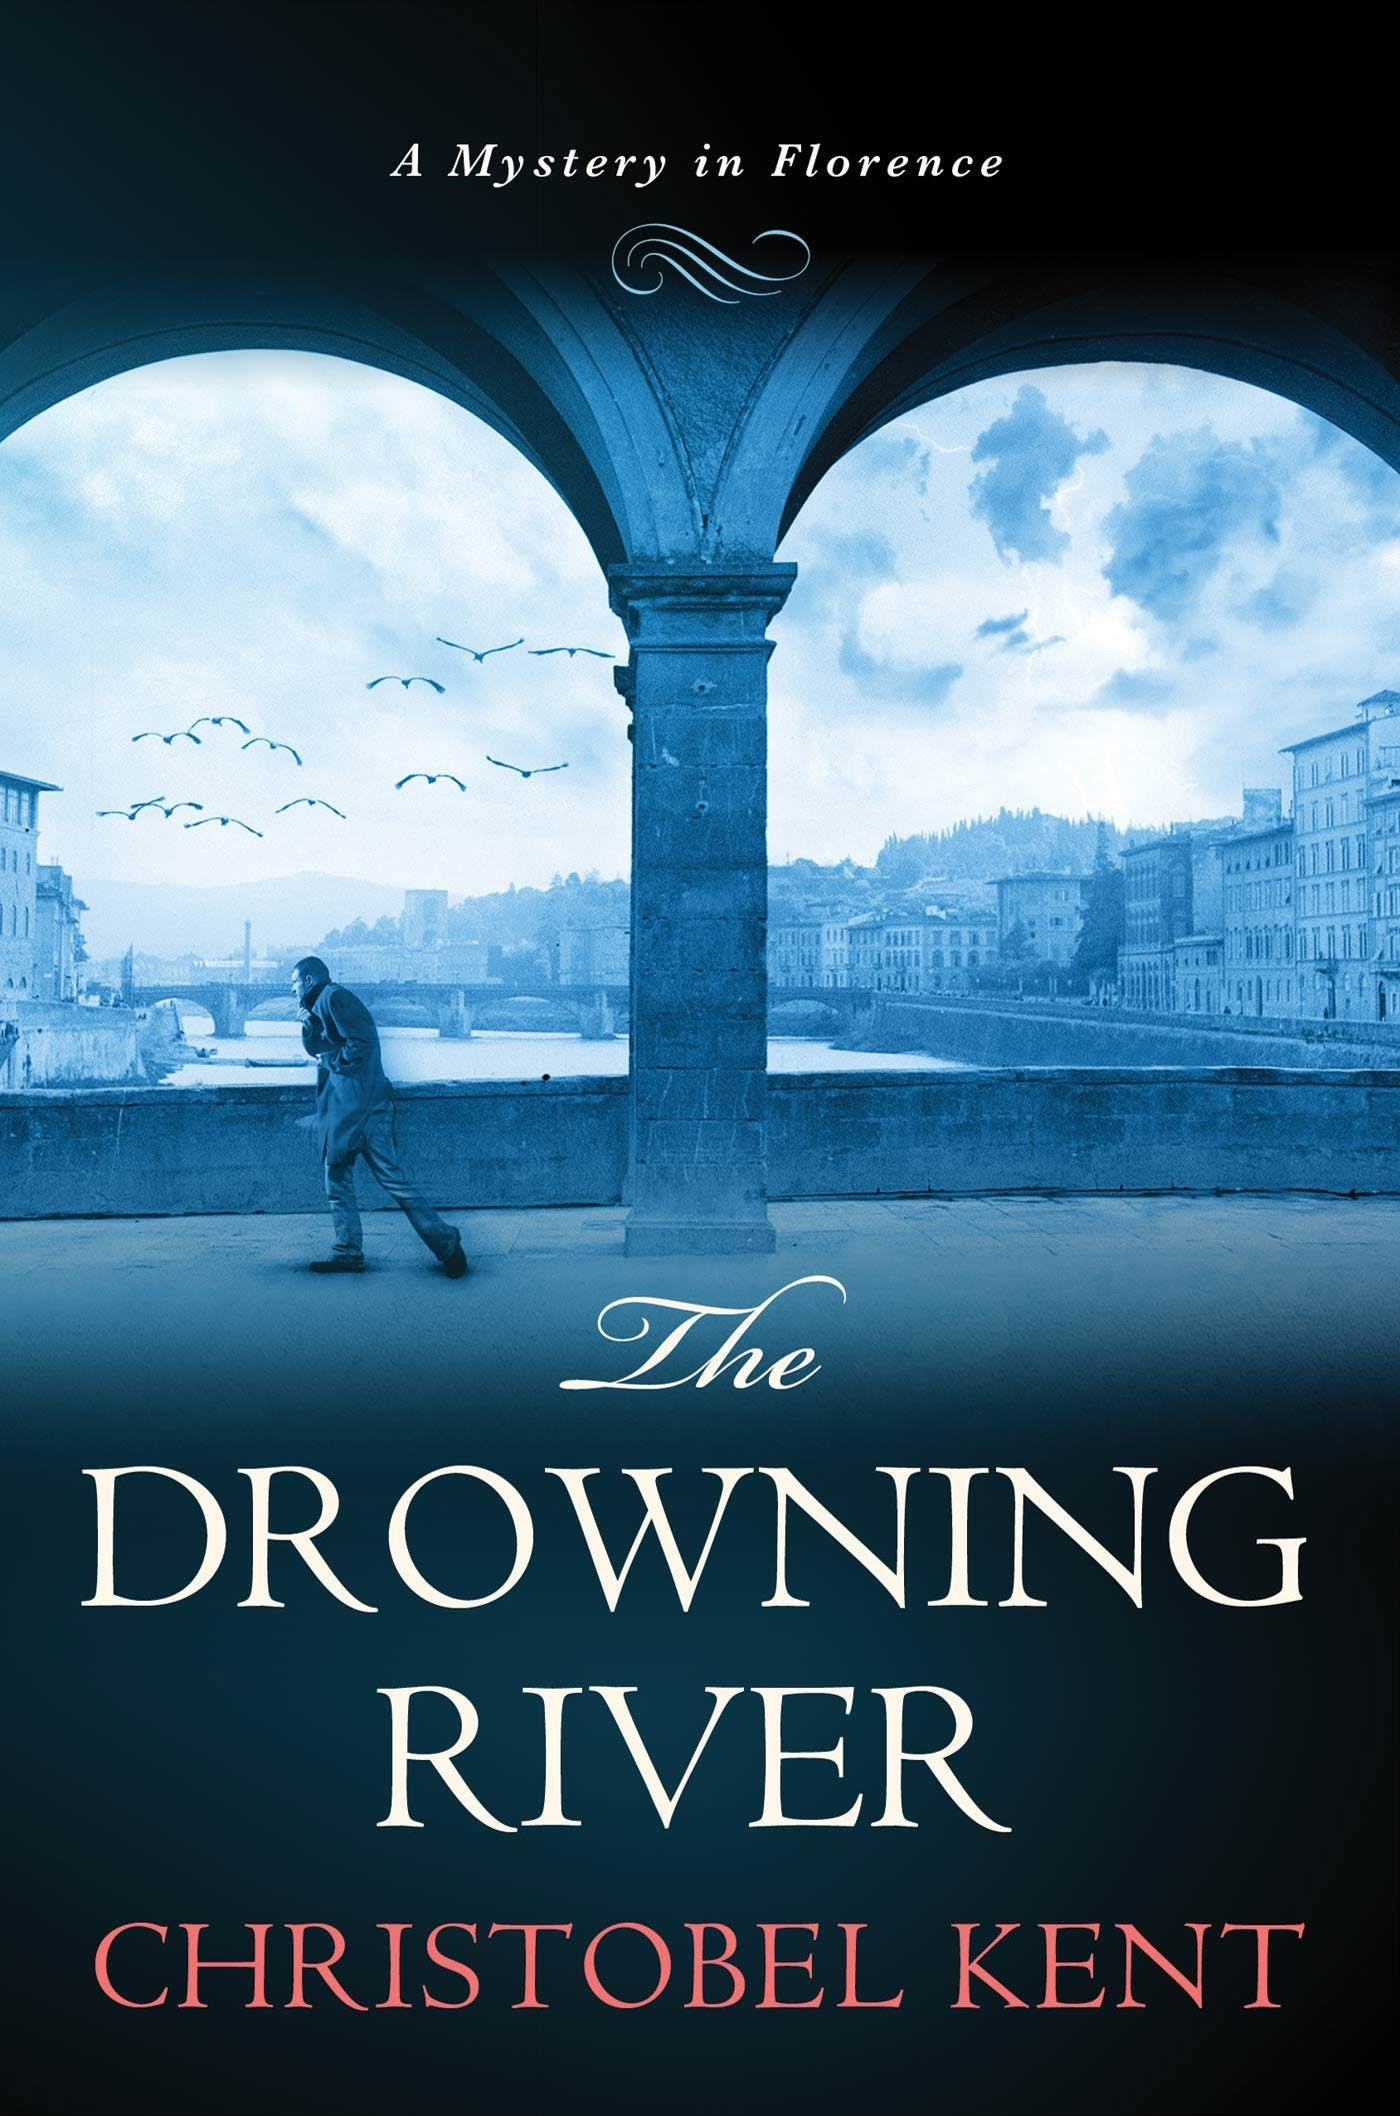 Image of The Drowning River